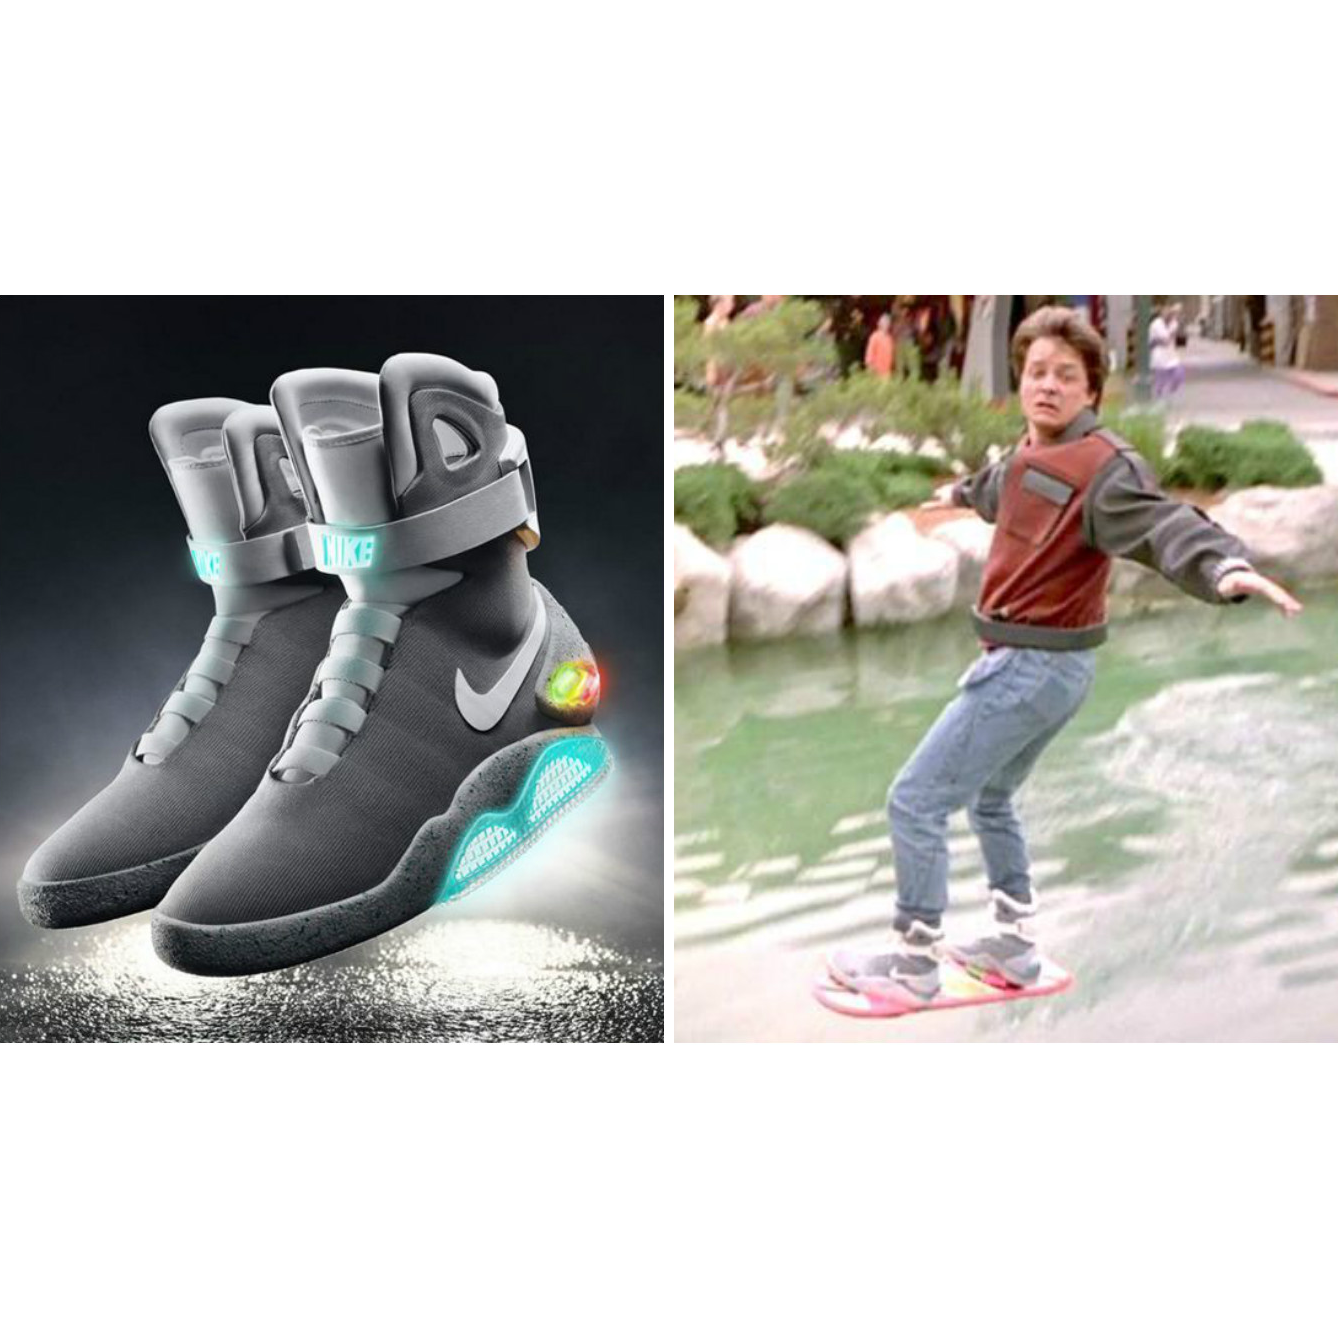 《Back to the Future II》Nike Air Mag 天價球鞋再創高價售出!